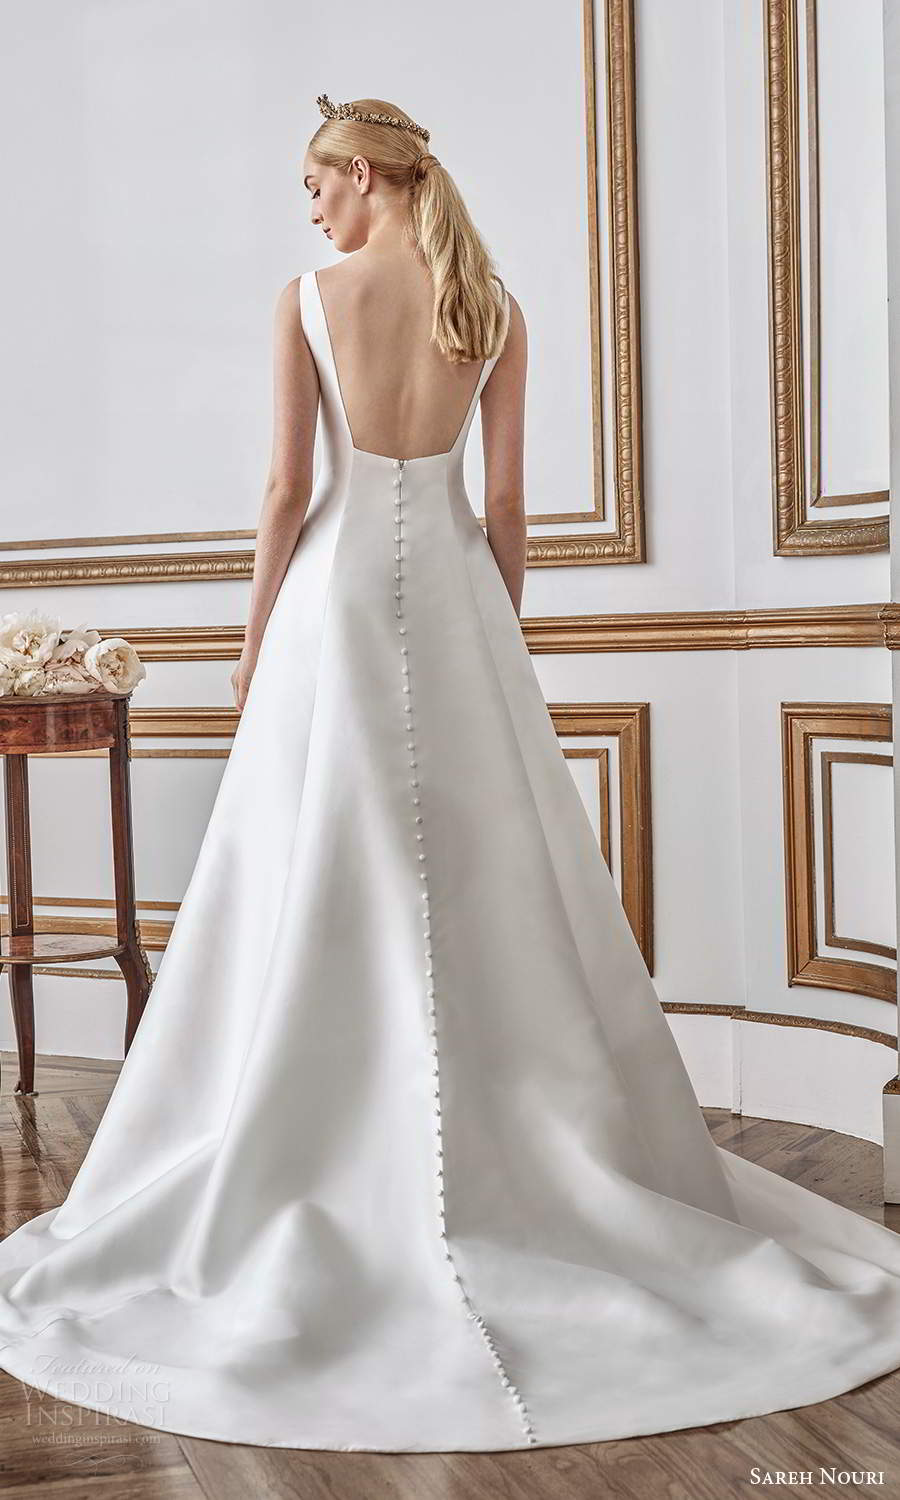 sareh nouri fall 2021 bridal sleeveless thick straps square neckline minimalist princess sheath wedding dress a line overskirt chapel train low back (9) bv